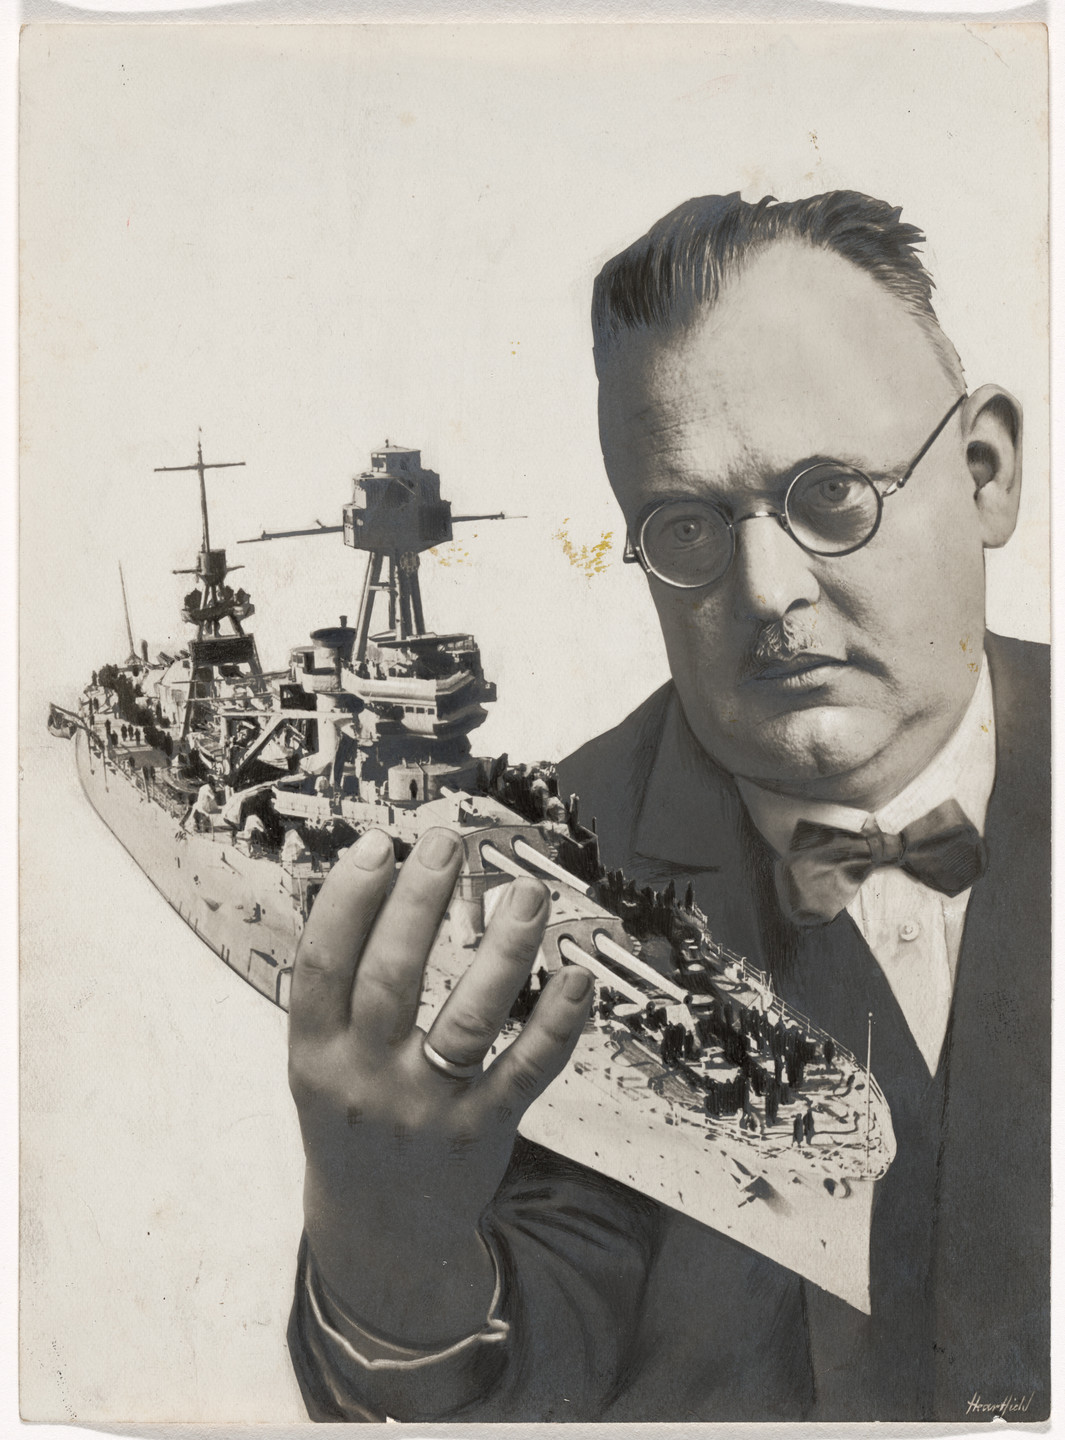 John Heartfield (born Helmut Herzfeld). Maquette for covers of the journal Die Rote Fahne (The red flag), vol. 11, no. 201, and the brochure Hurra! Der Panzerkreuzer A ist da! (Hooray! The battle cruiser A has arrived!). 1928